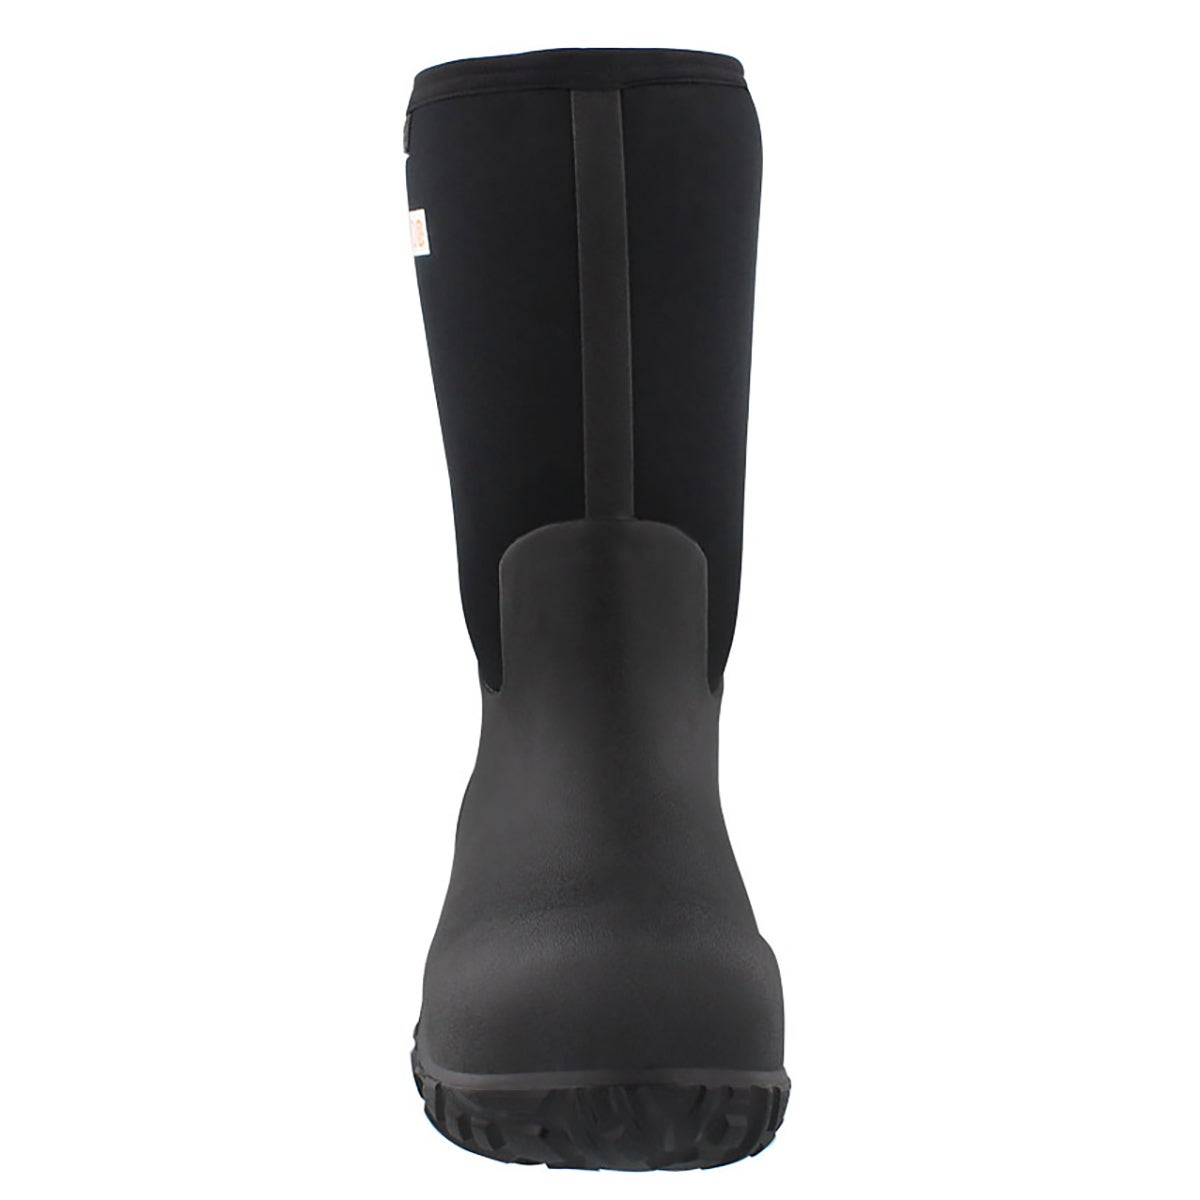 Mns Workman CT CSA wtpf blk boot